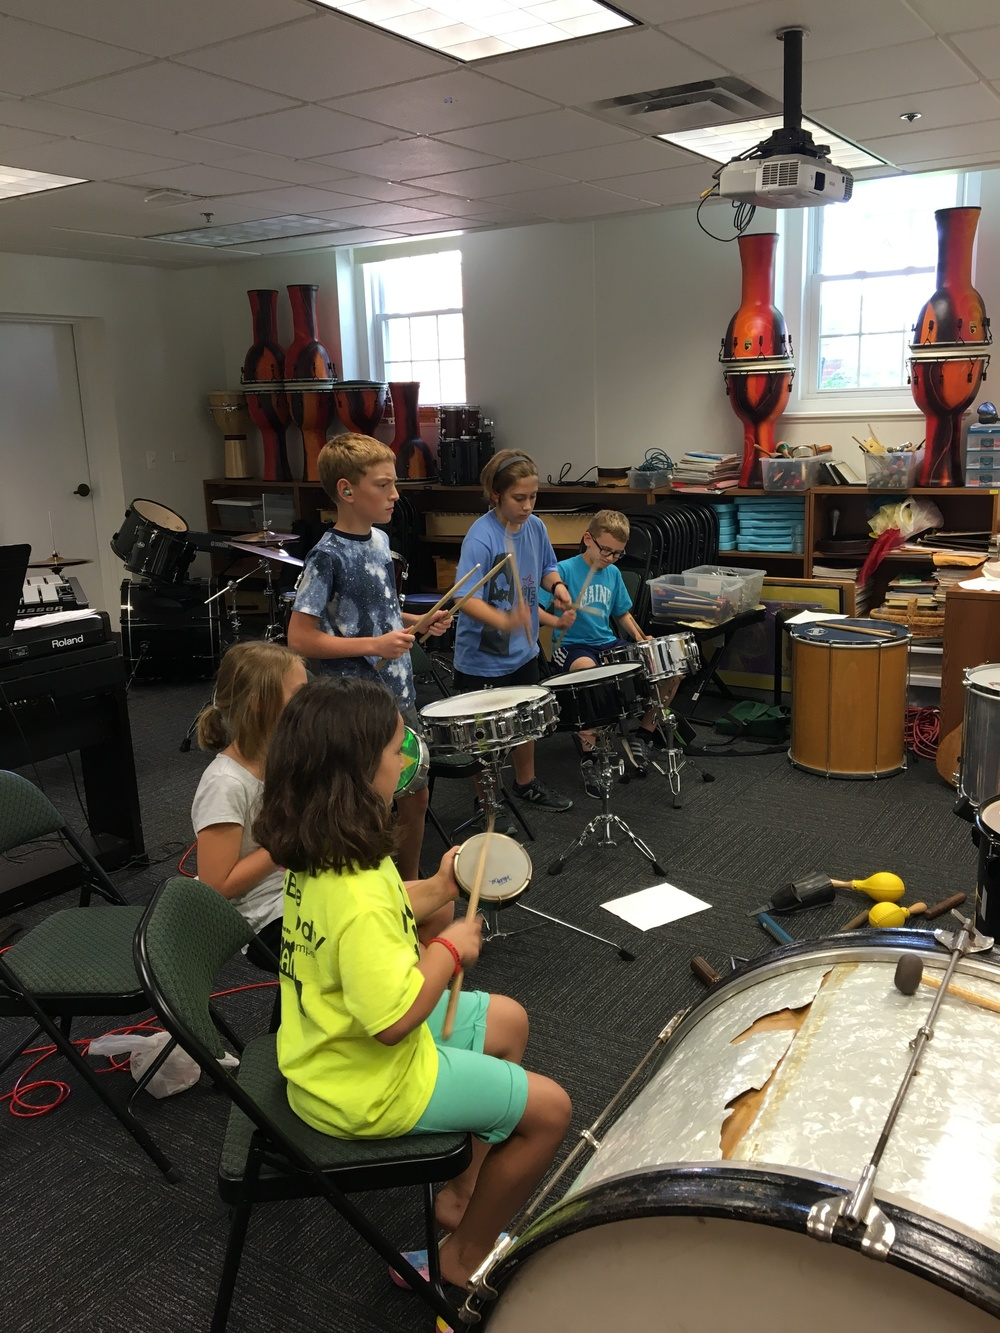 Campers learning to play the drums in music camp